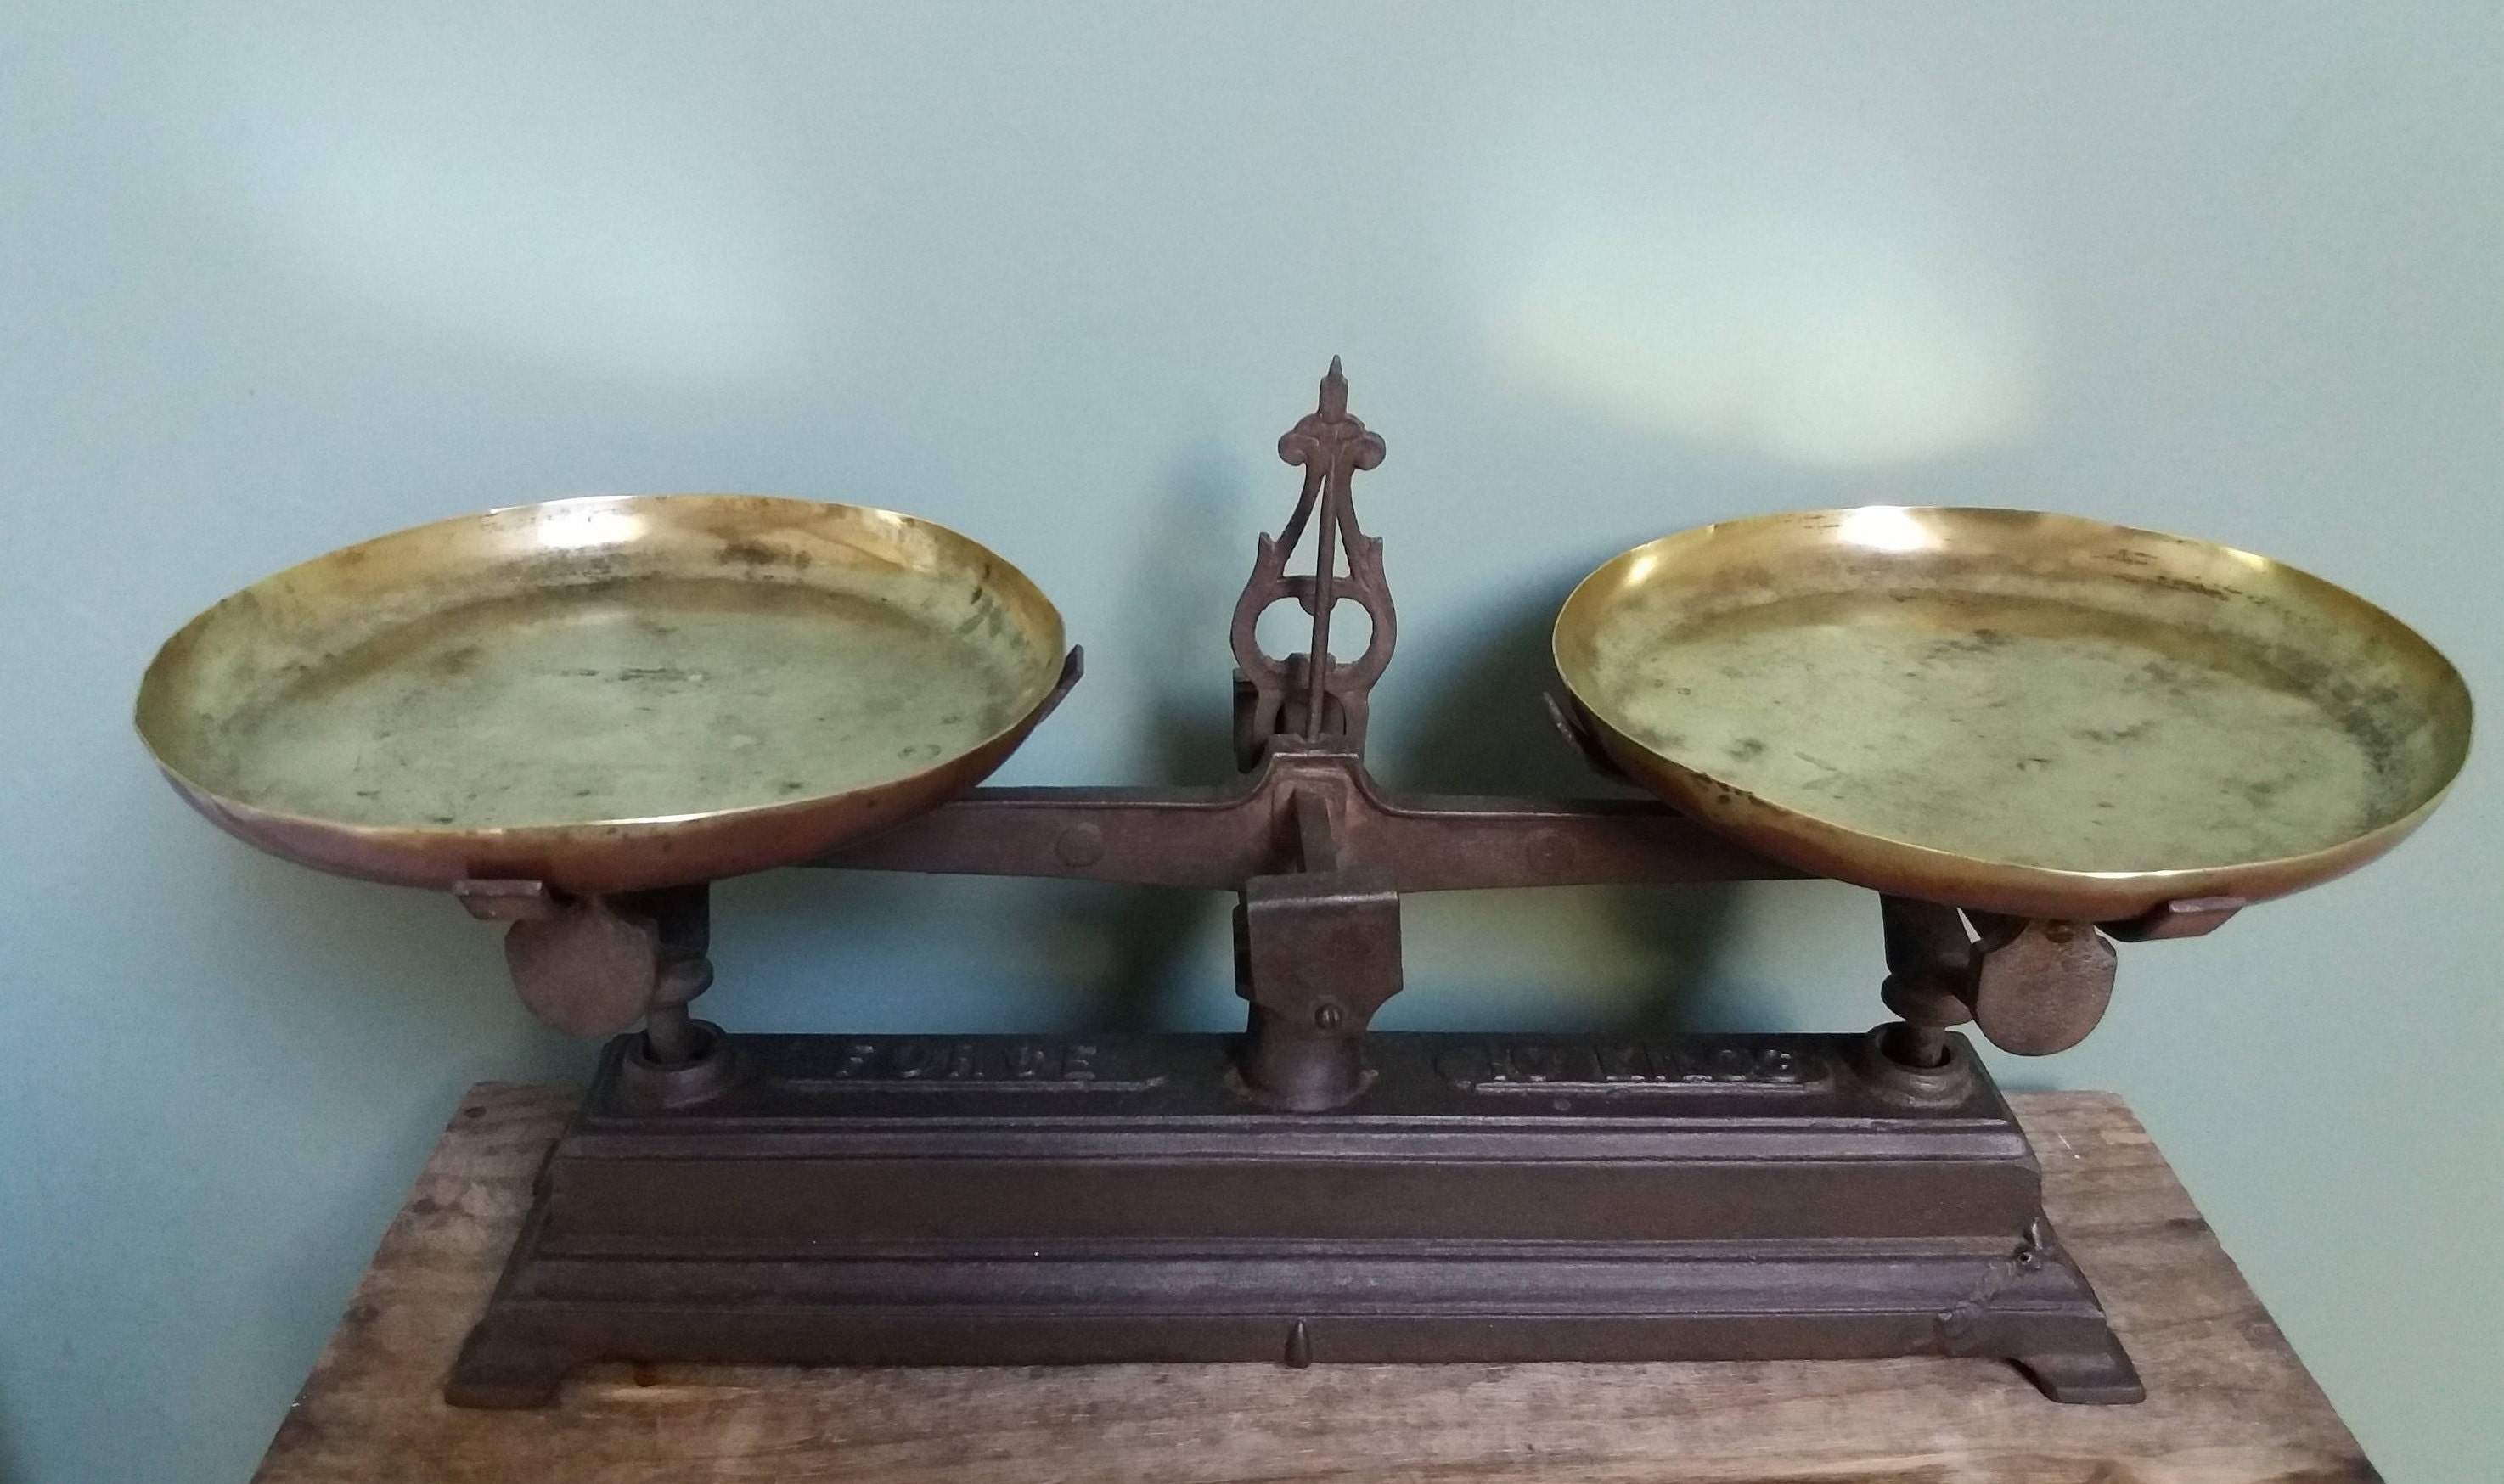 Antique French Scales Cast Iron and Brass plates 10 kg French